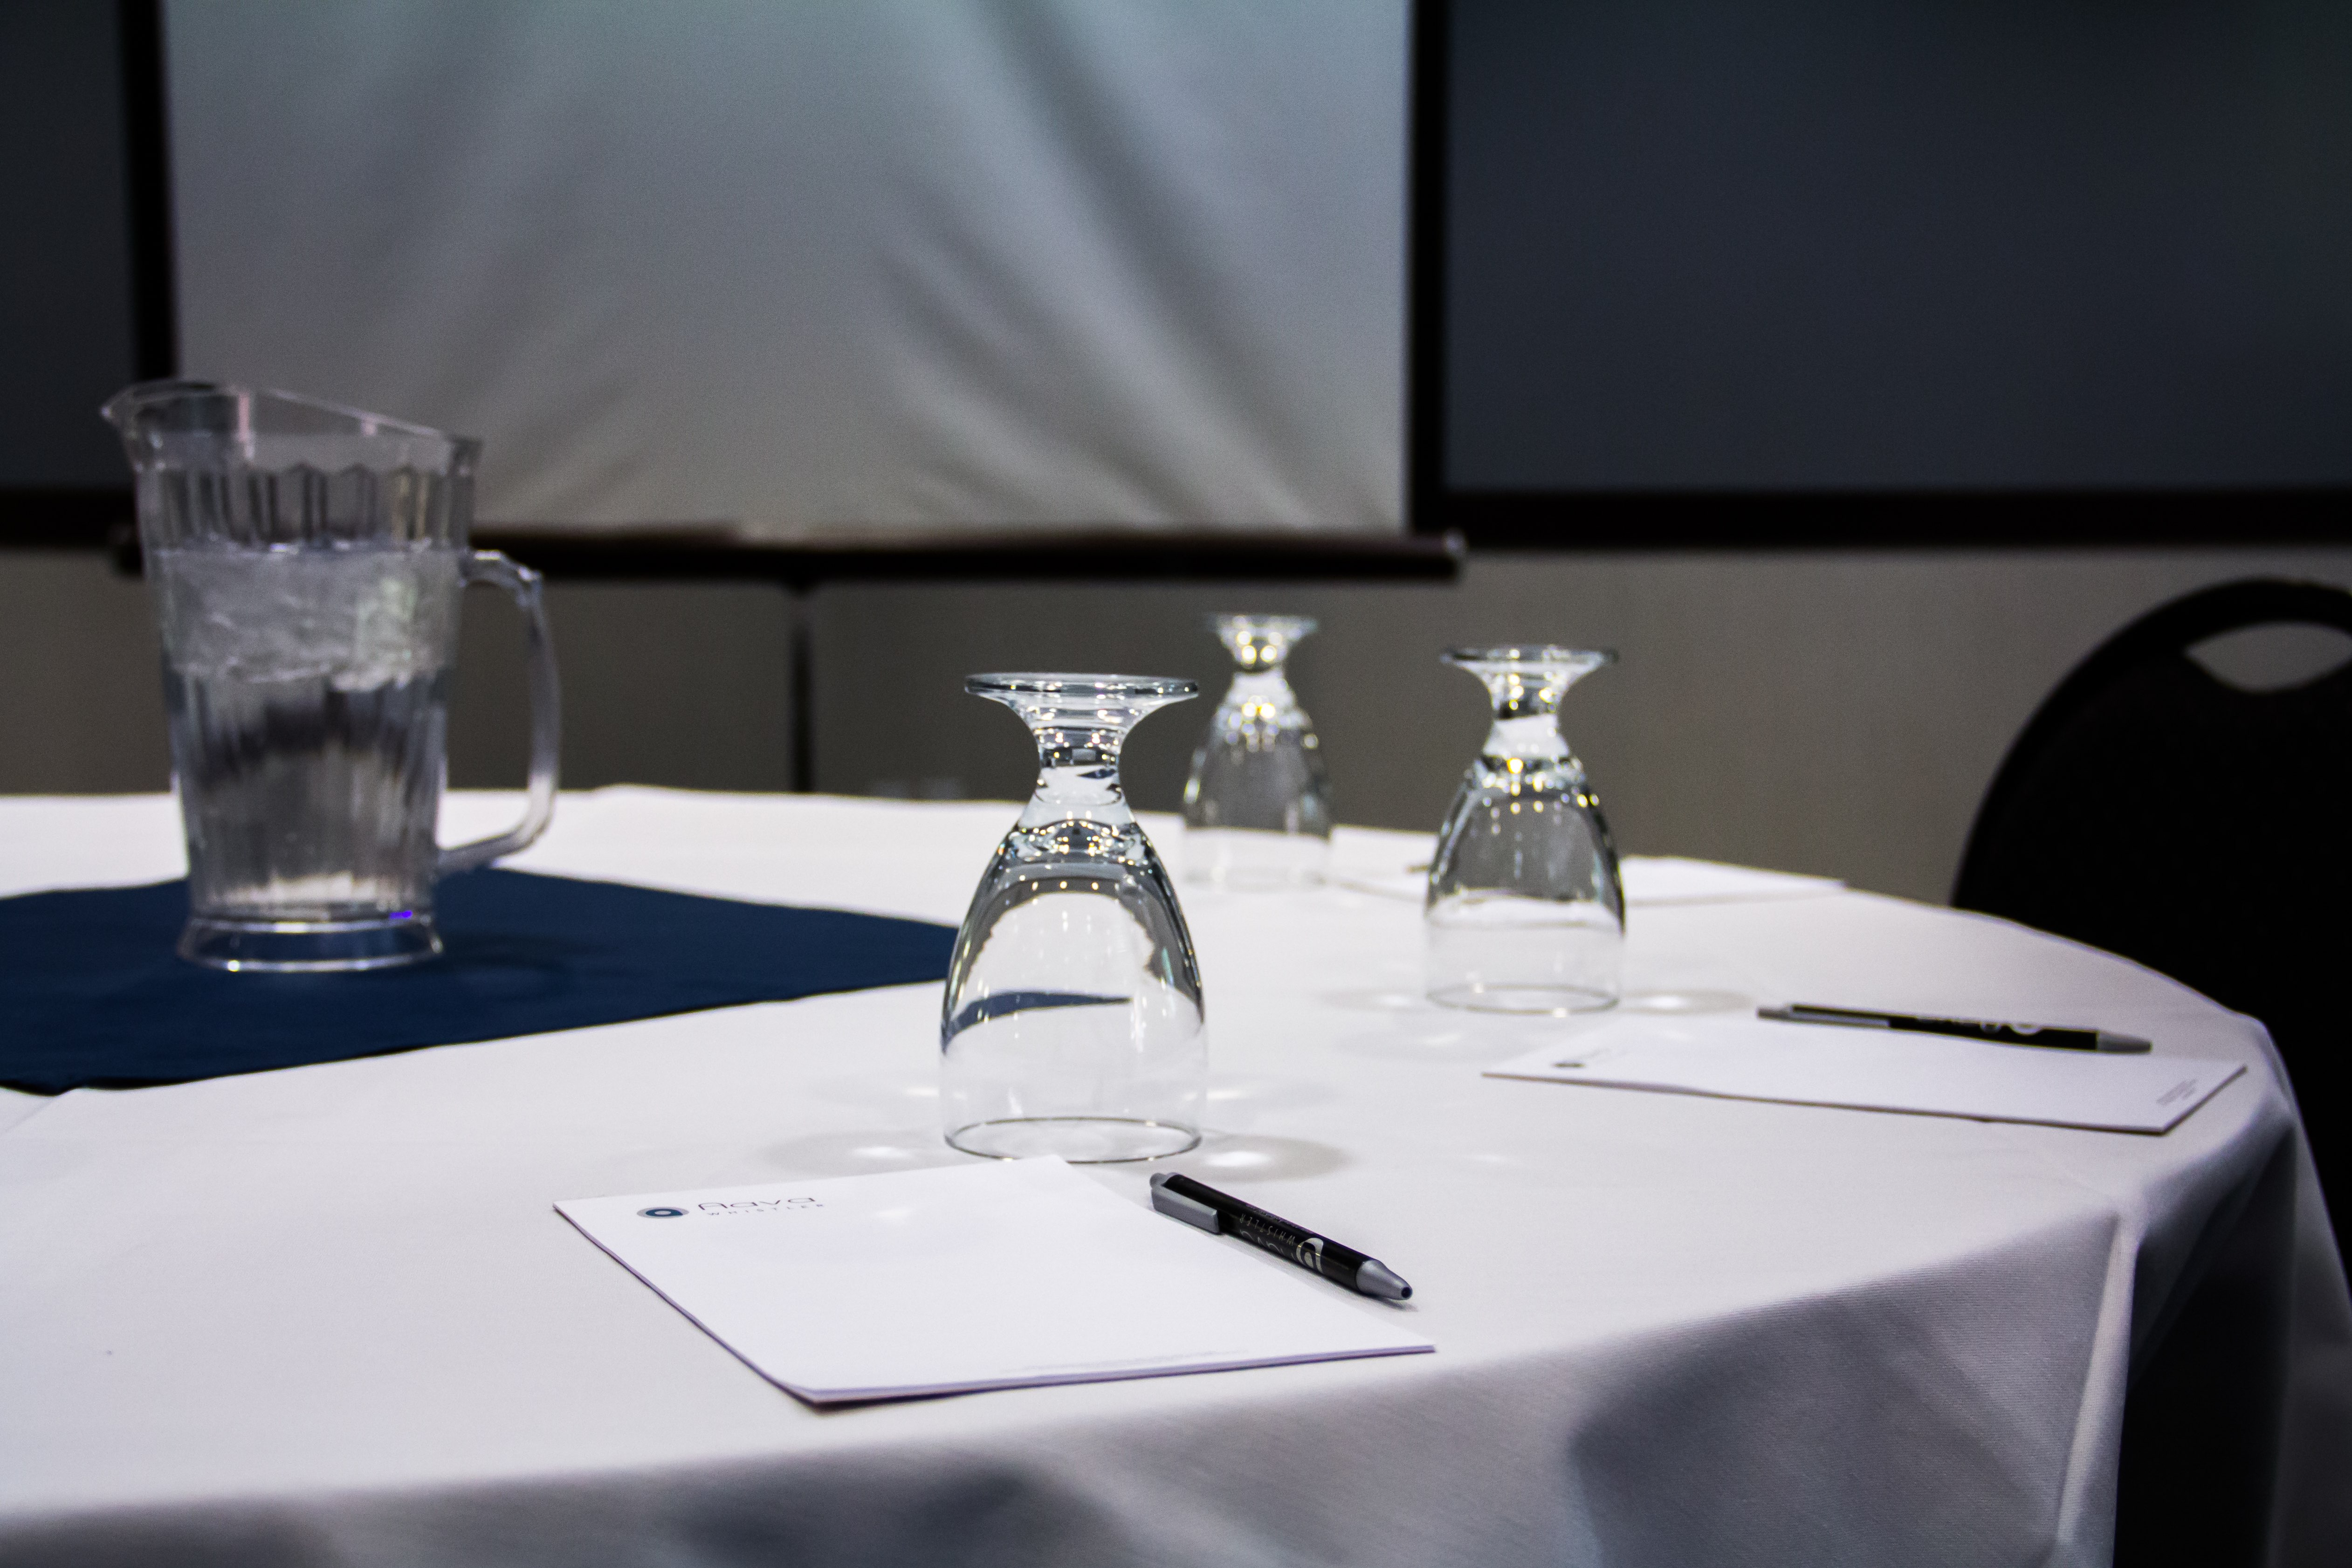 interior photo conference room pen and paper pad on the table jug of water glass decorated landscape